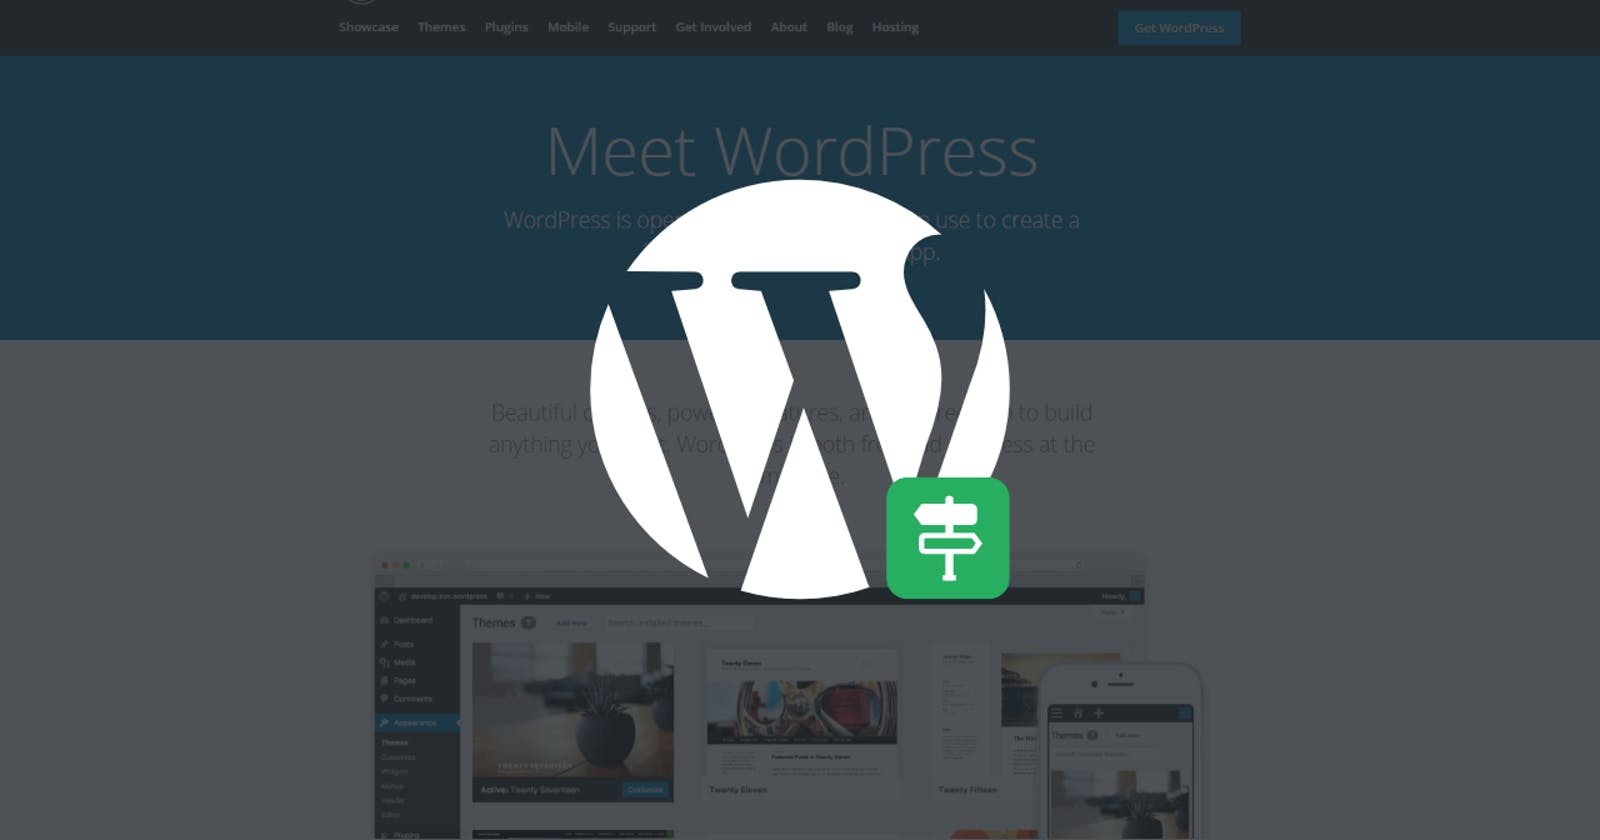 Find out the version number of a WordPress theme